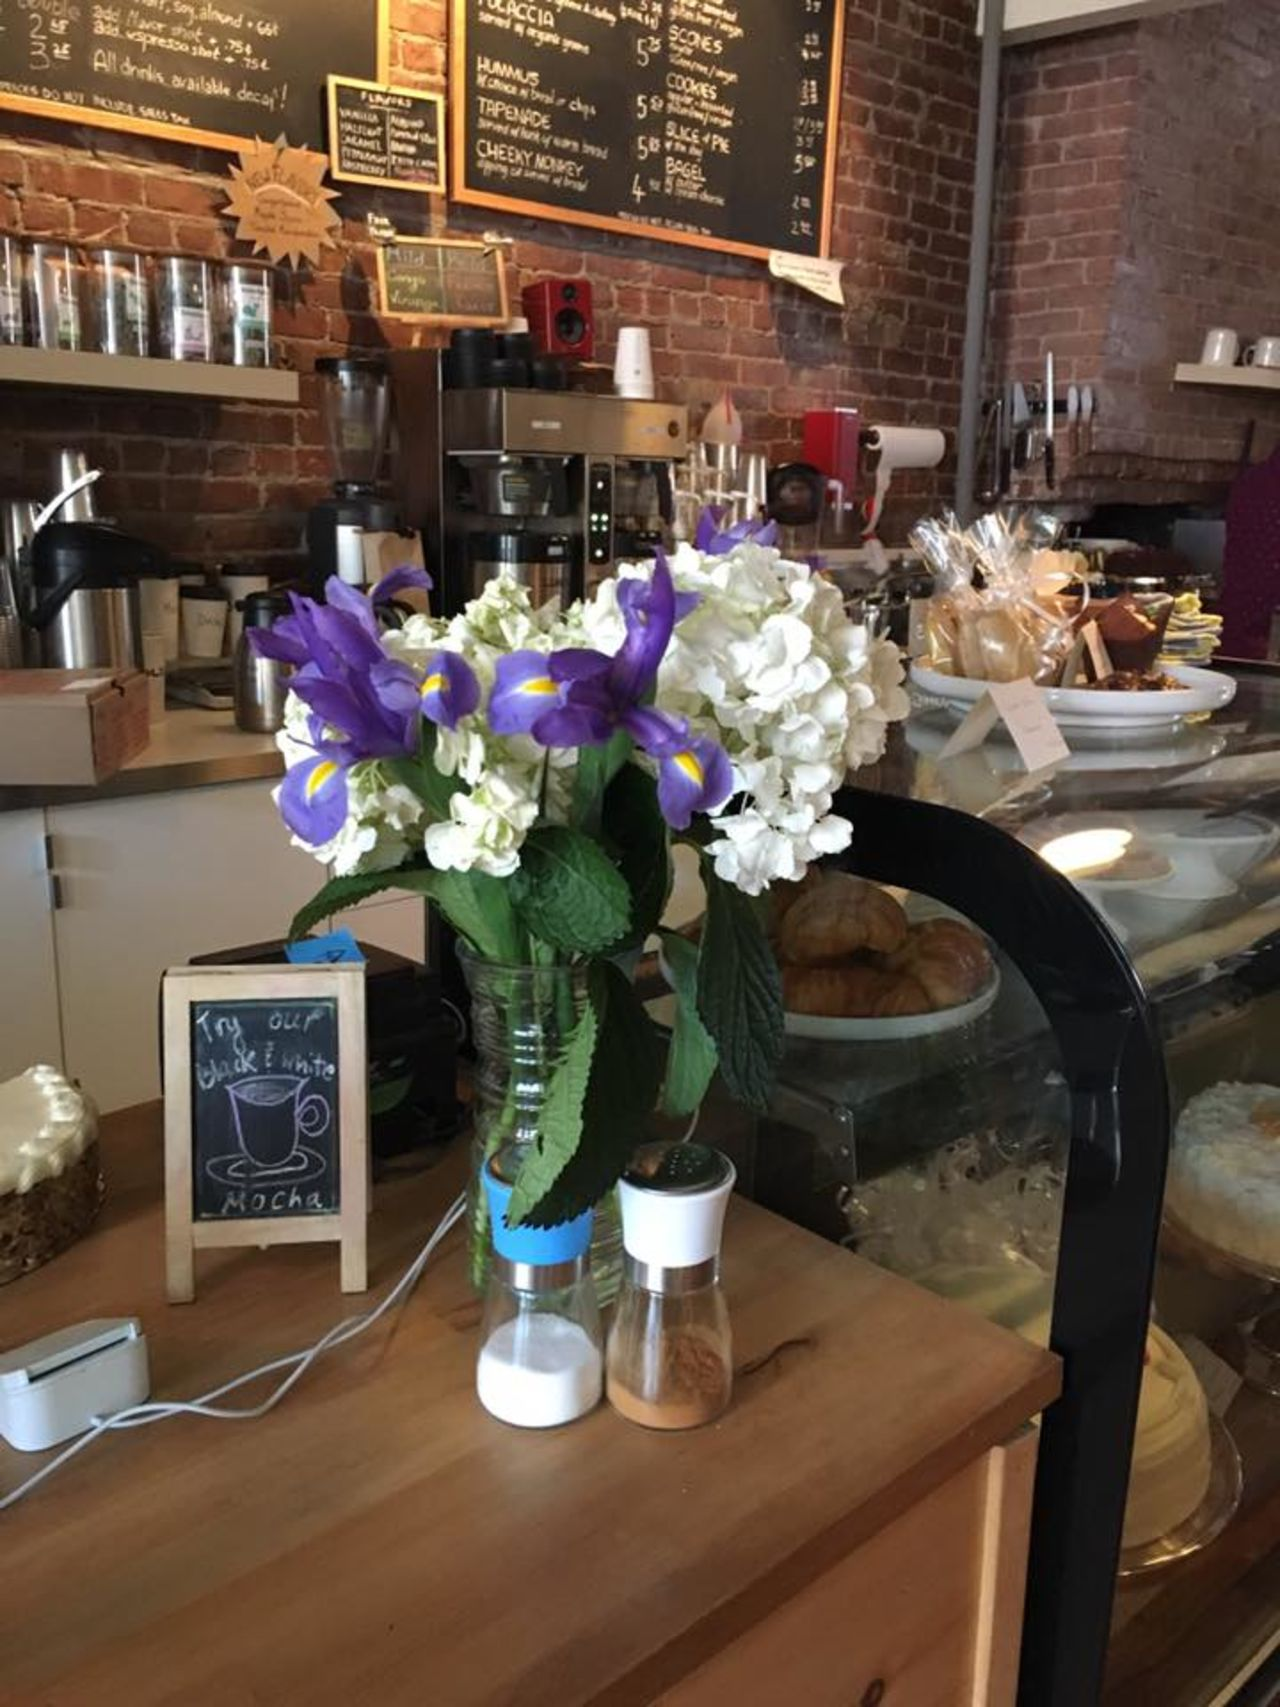 A photo of Muddy Water Coffee & Café